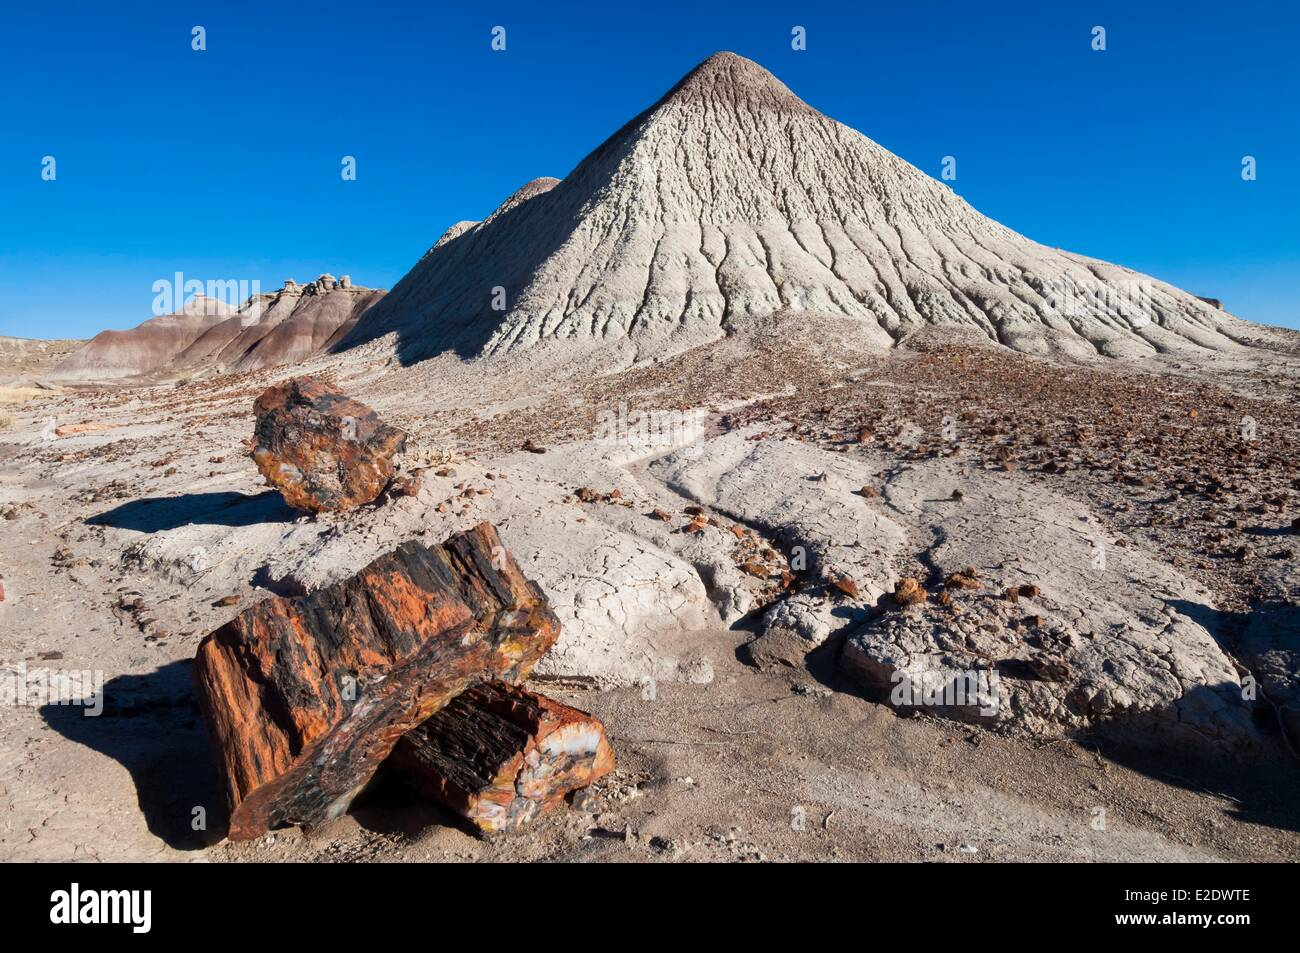 United States Arizona Petrified Forest National Monument fossilized tree - Stock Image